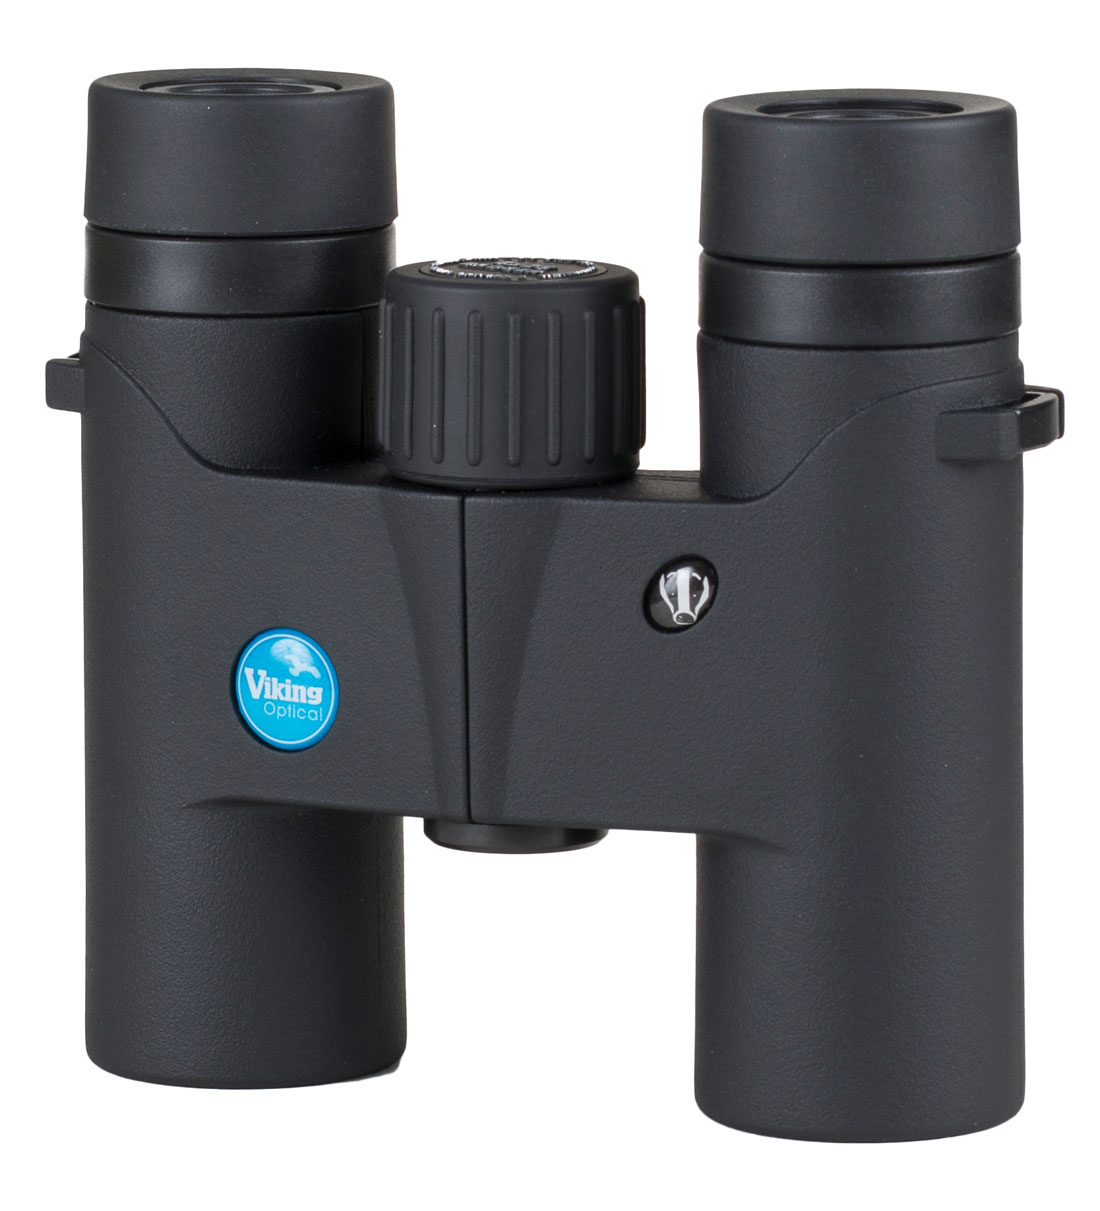 Viking Badger 8x25 Binoculars 2018 Version